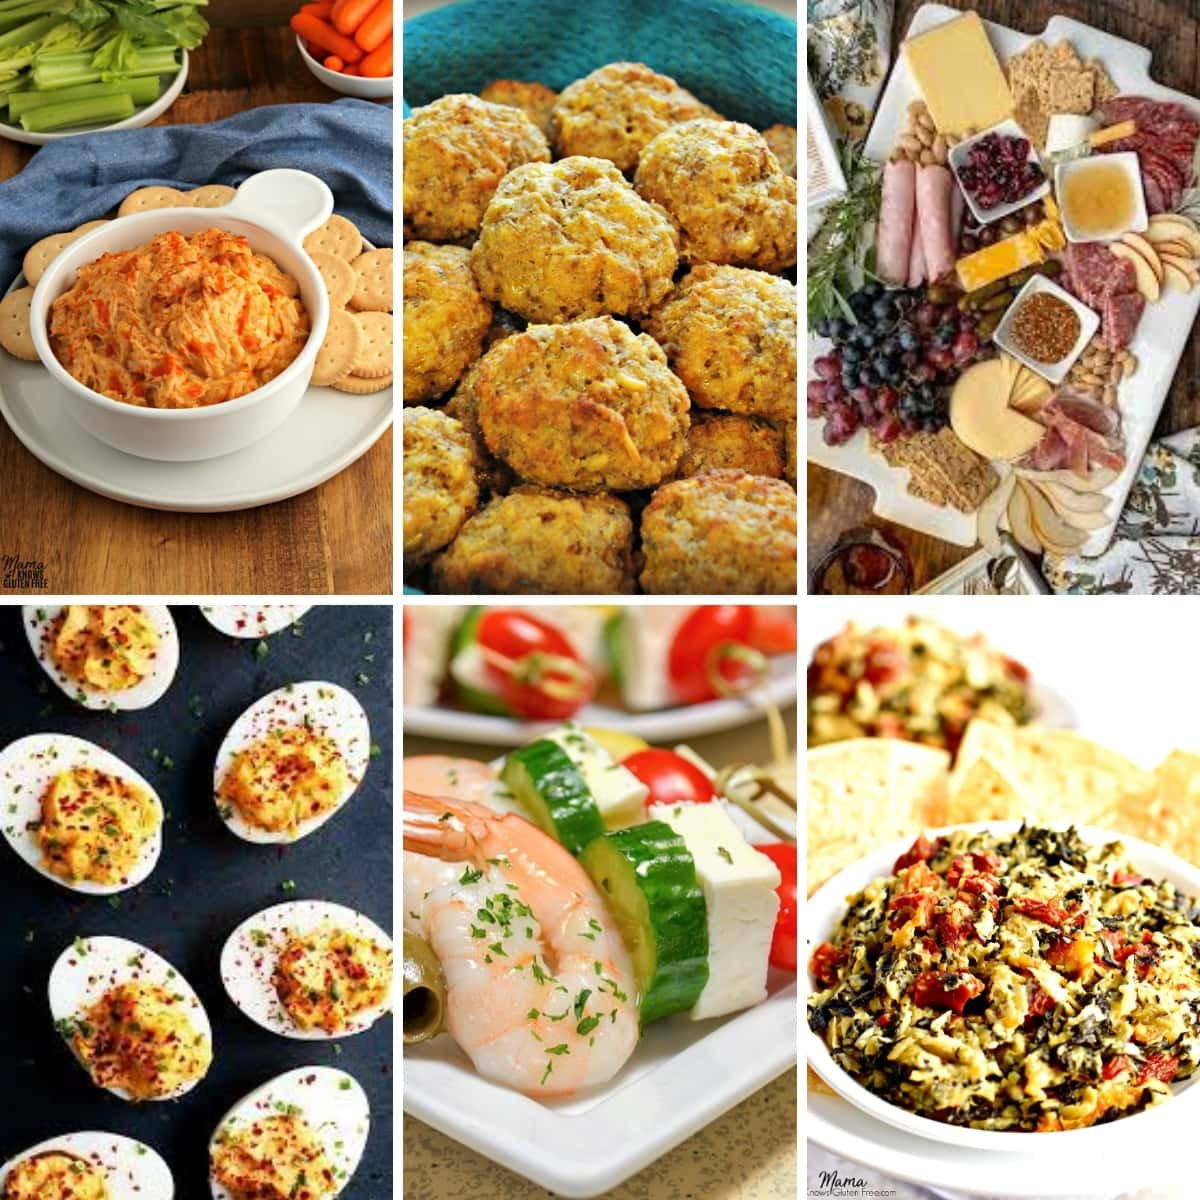 gluten-free Easter appetizer recipes photo collage